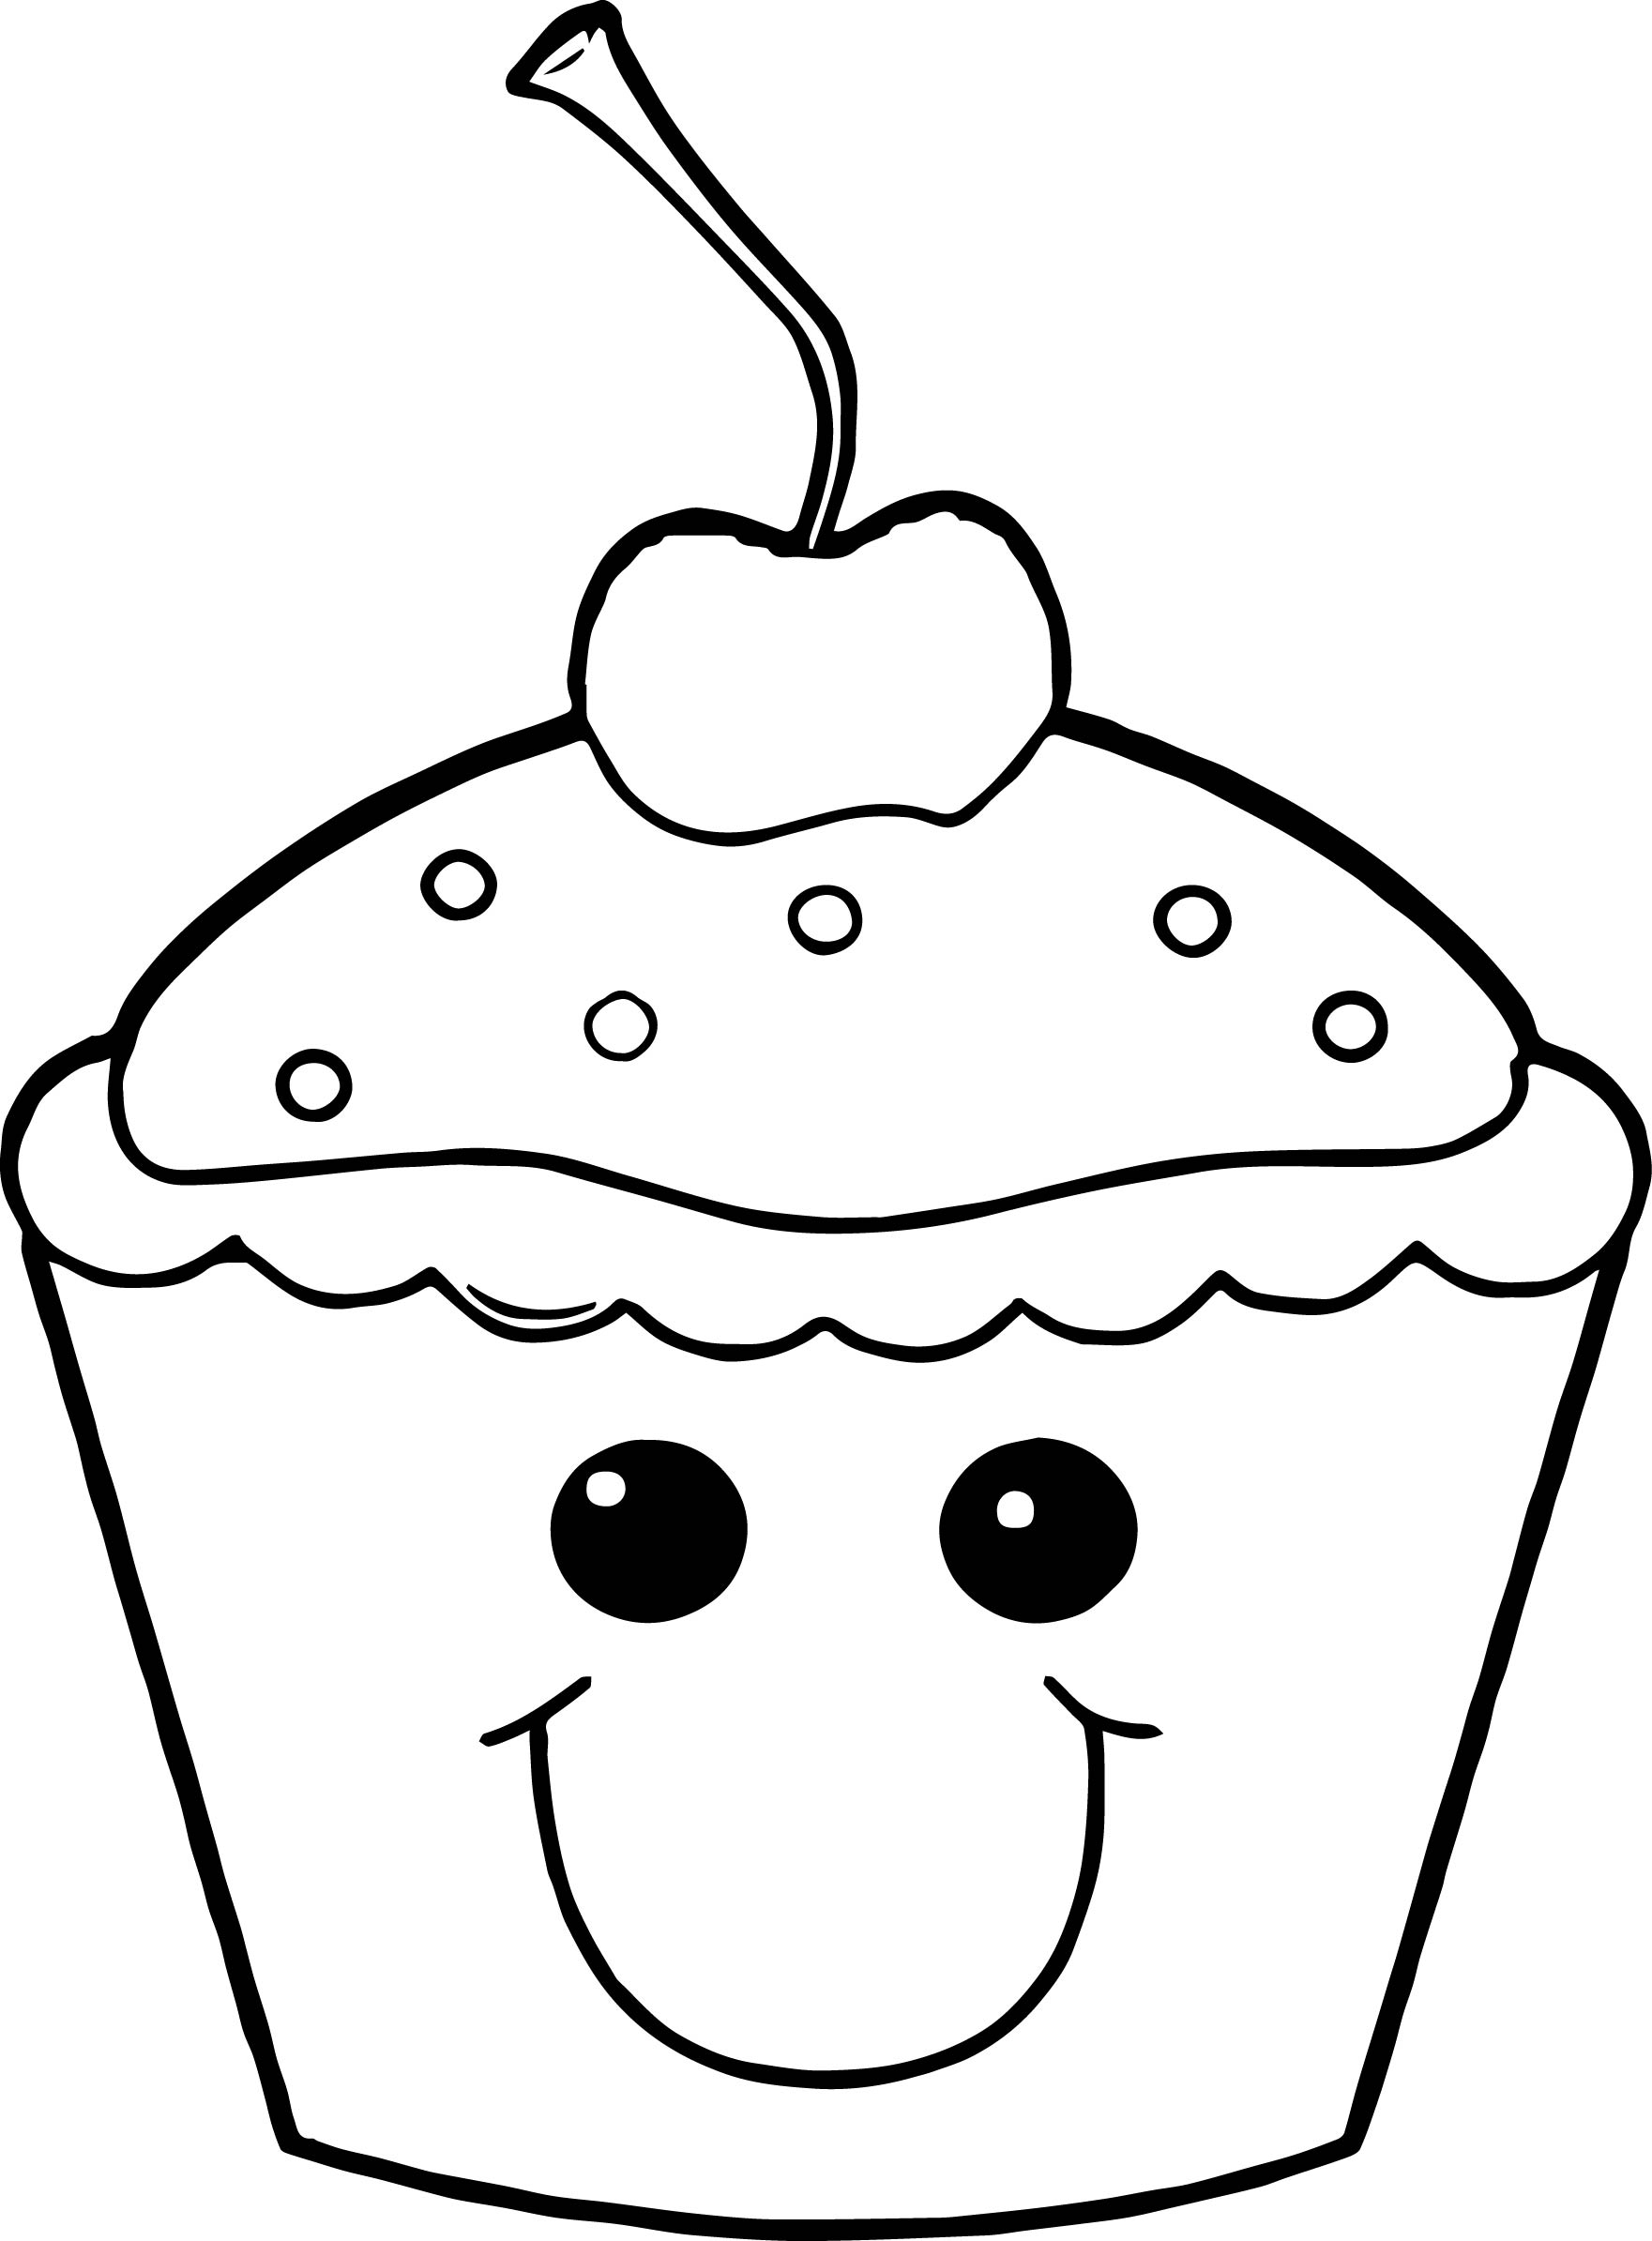 1761x2389 Free Printable Cupcake Coloring Pages For Kids Page Adults